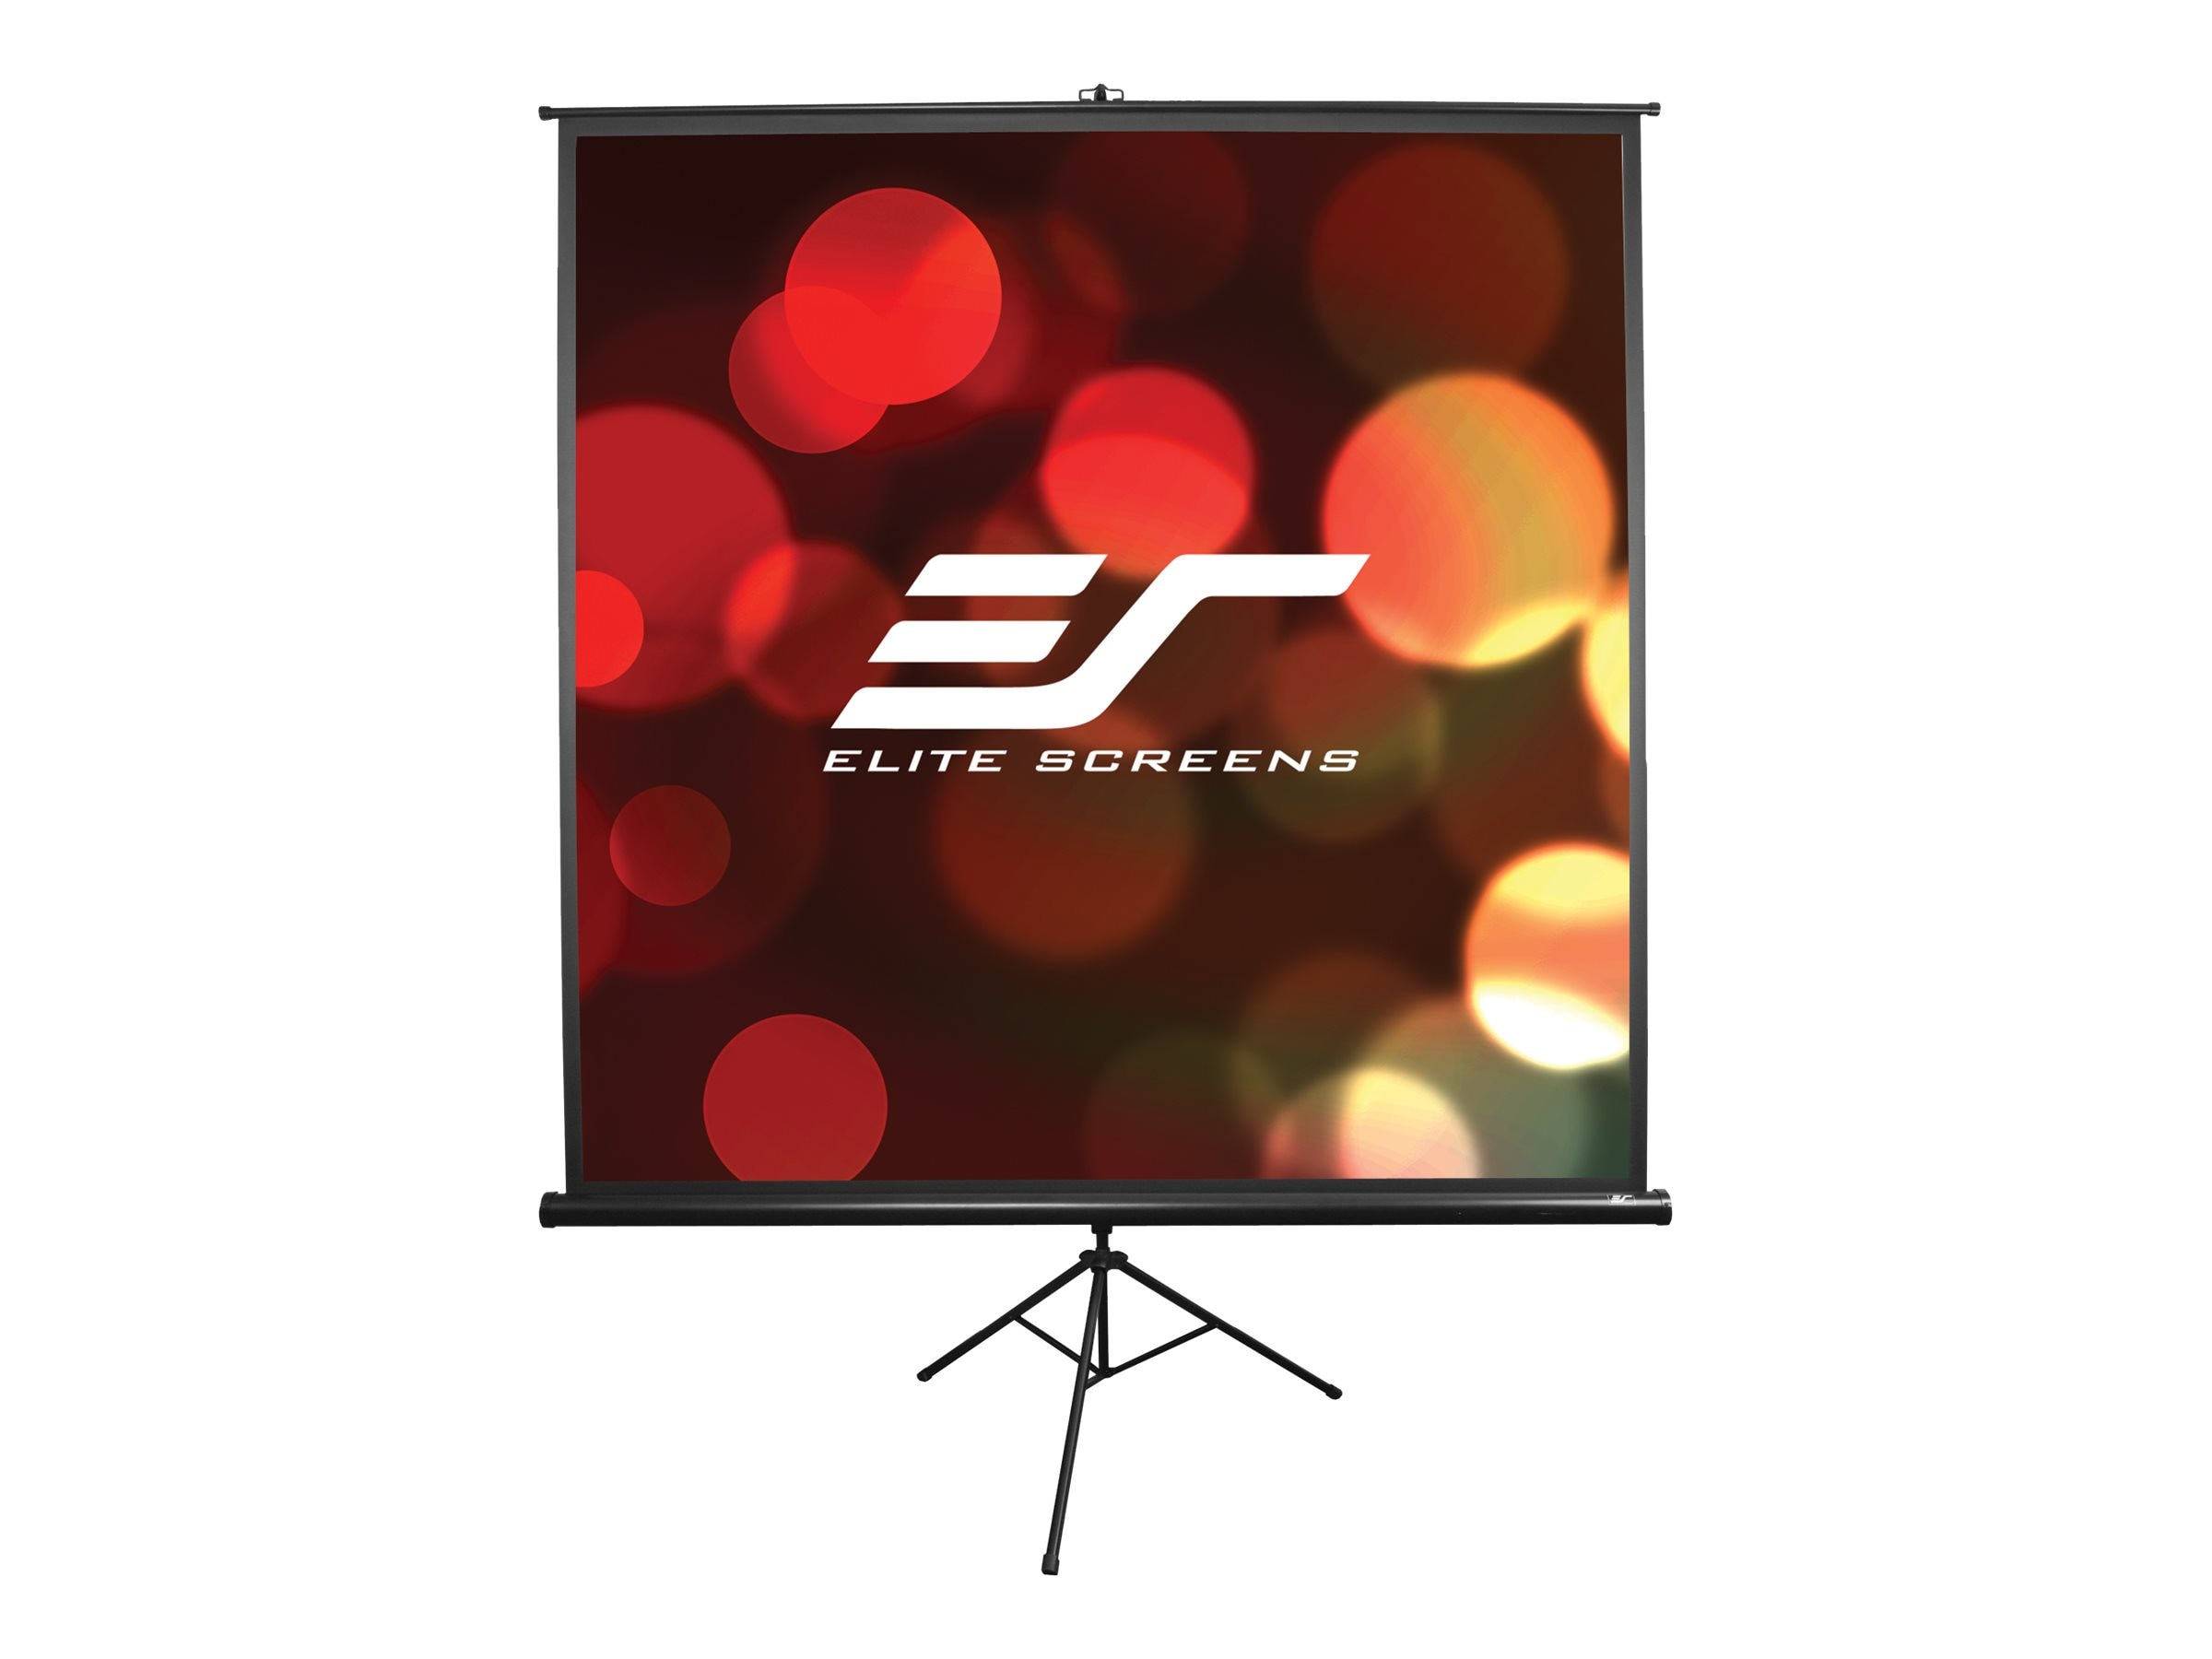 Elite Screens T136UWS1 Image 1